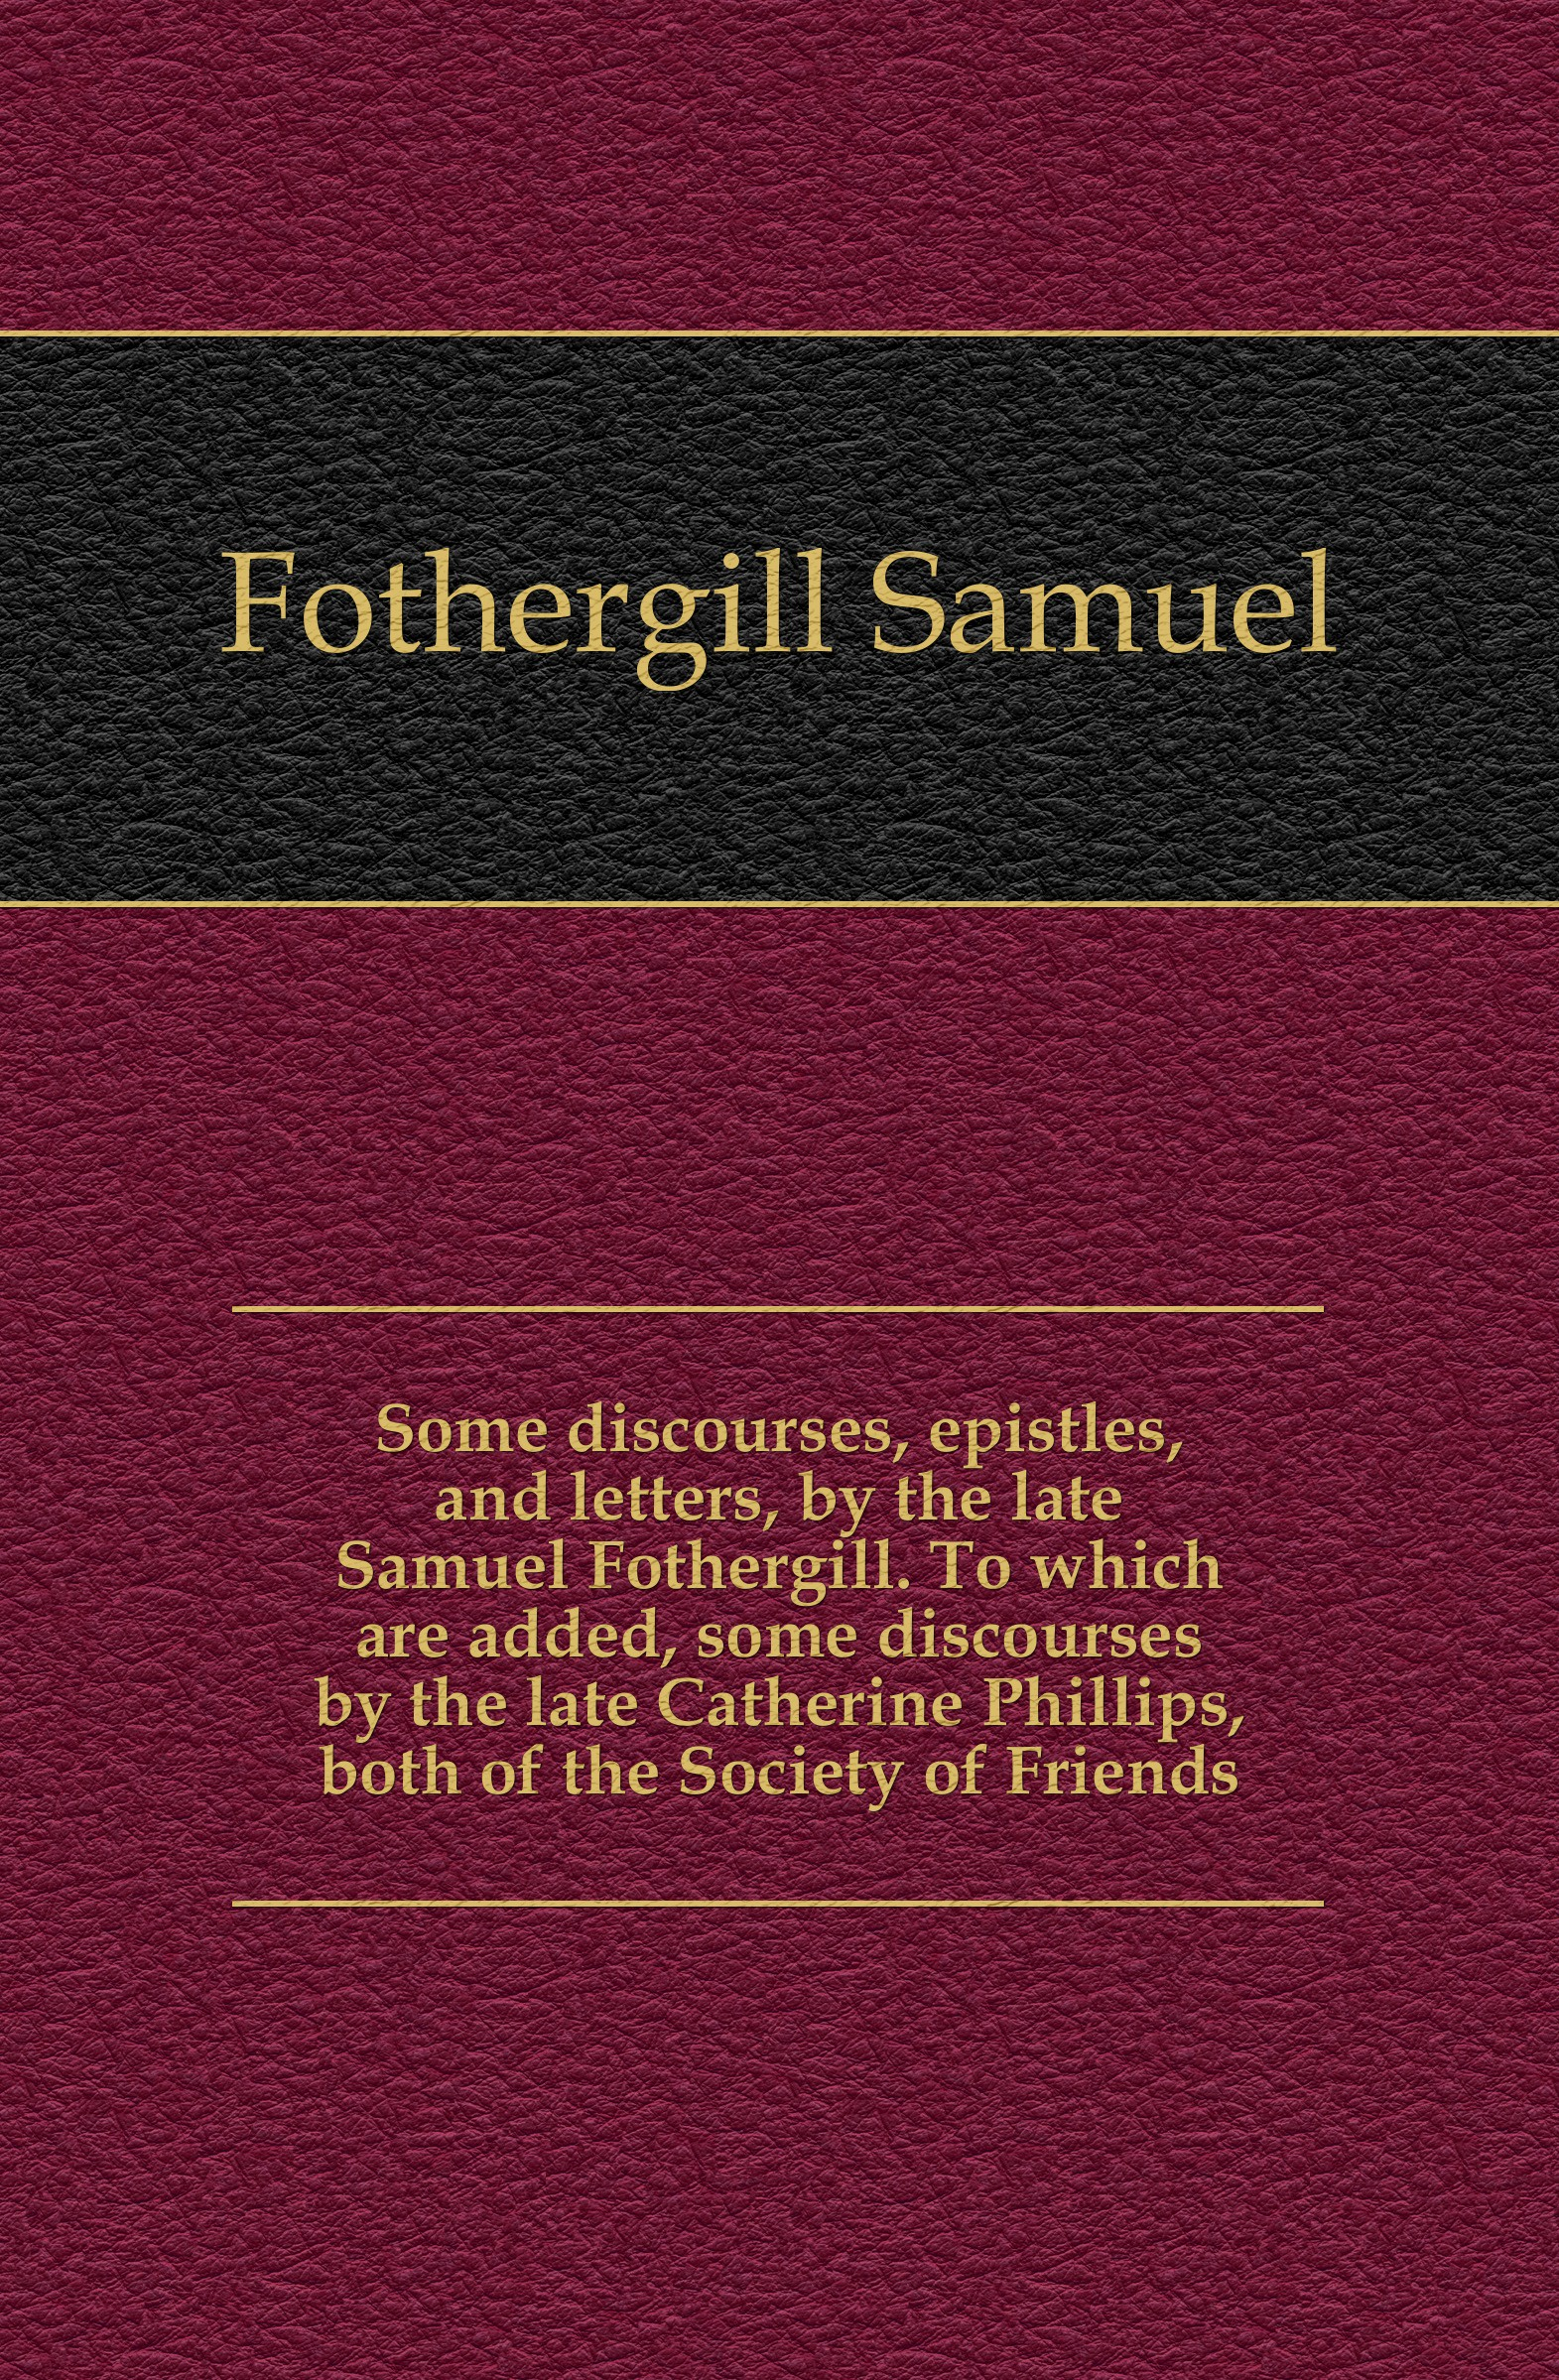 Fothergill Samuel Some discourses, epistles, and letters, by the late Samuel Fothergill. To which are added, some discourses by the late Catherine Phillips, both of the Society of Friends samuel porter david elliott discourses and dialogues of the late rev samuel porter